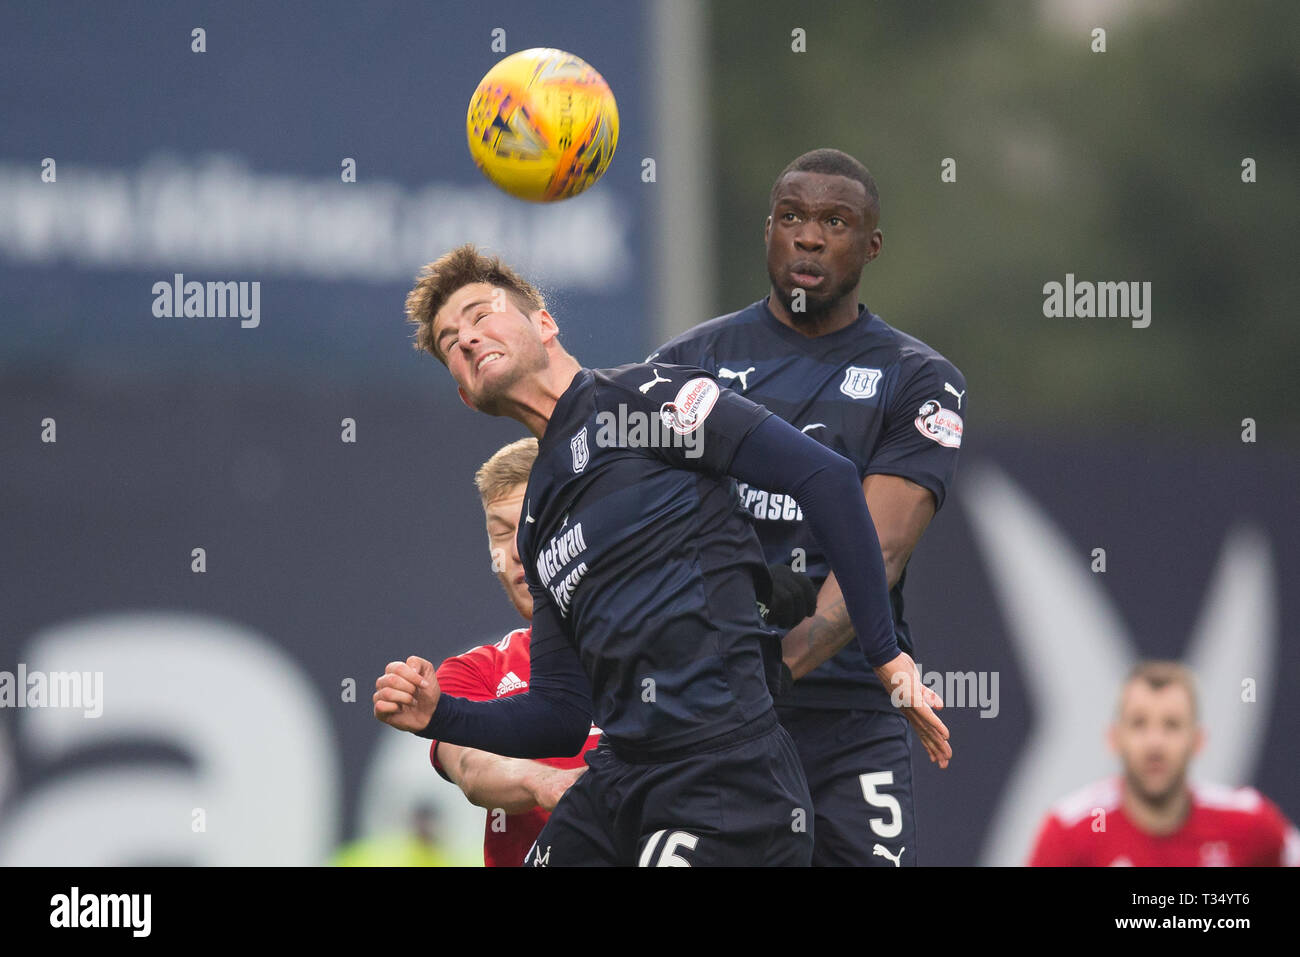 Dens Park, Dundee, UK. 6th Apr, 2019. Ladbrokes Premiership football, Dundee versus Aberdeen; Ethan Robson and Genserix Kusunga of Dundee competes in the air with Sam Cosgrove of Aberdeen Credit: Action Plus Sports/Alamy Live News - Stock Image